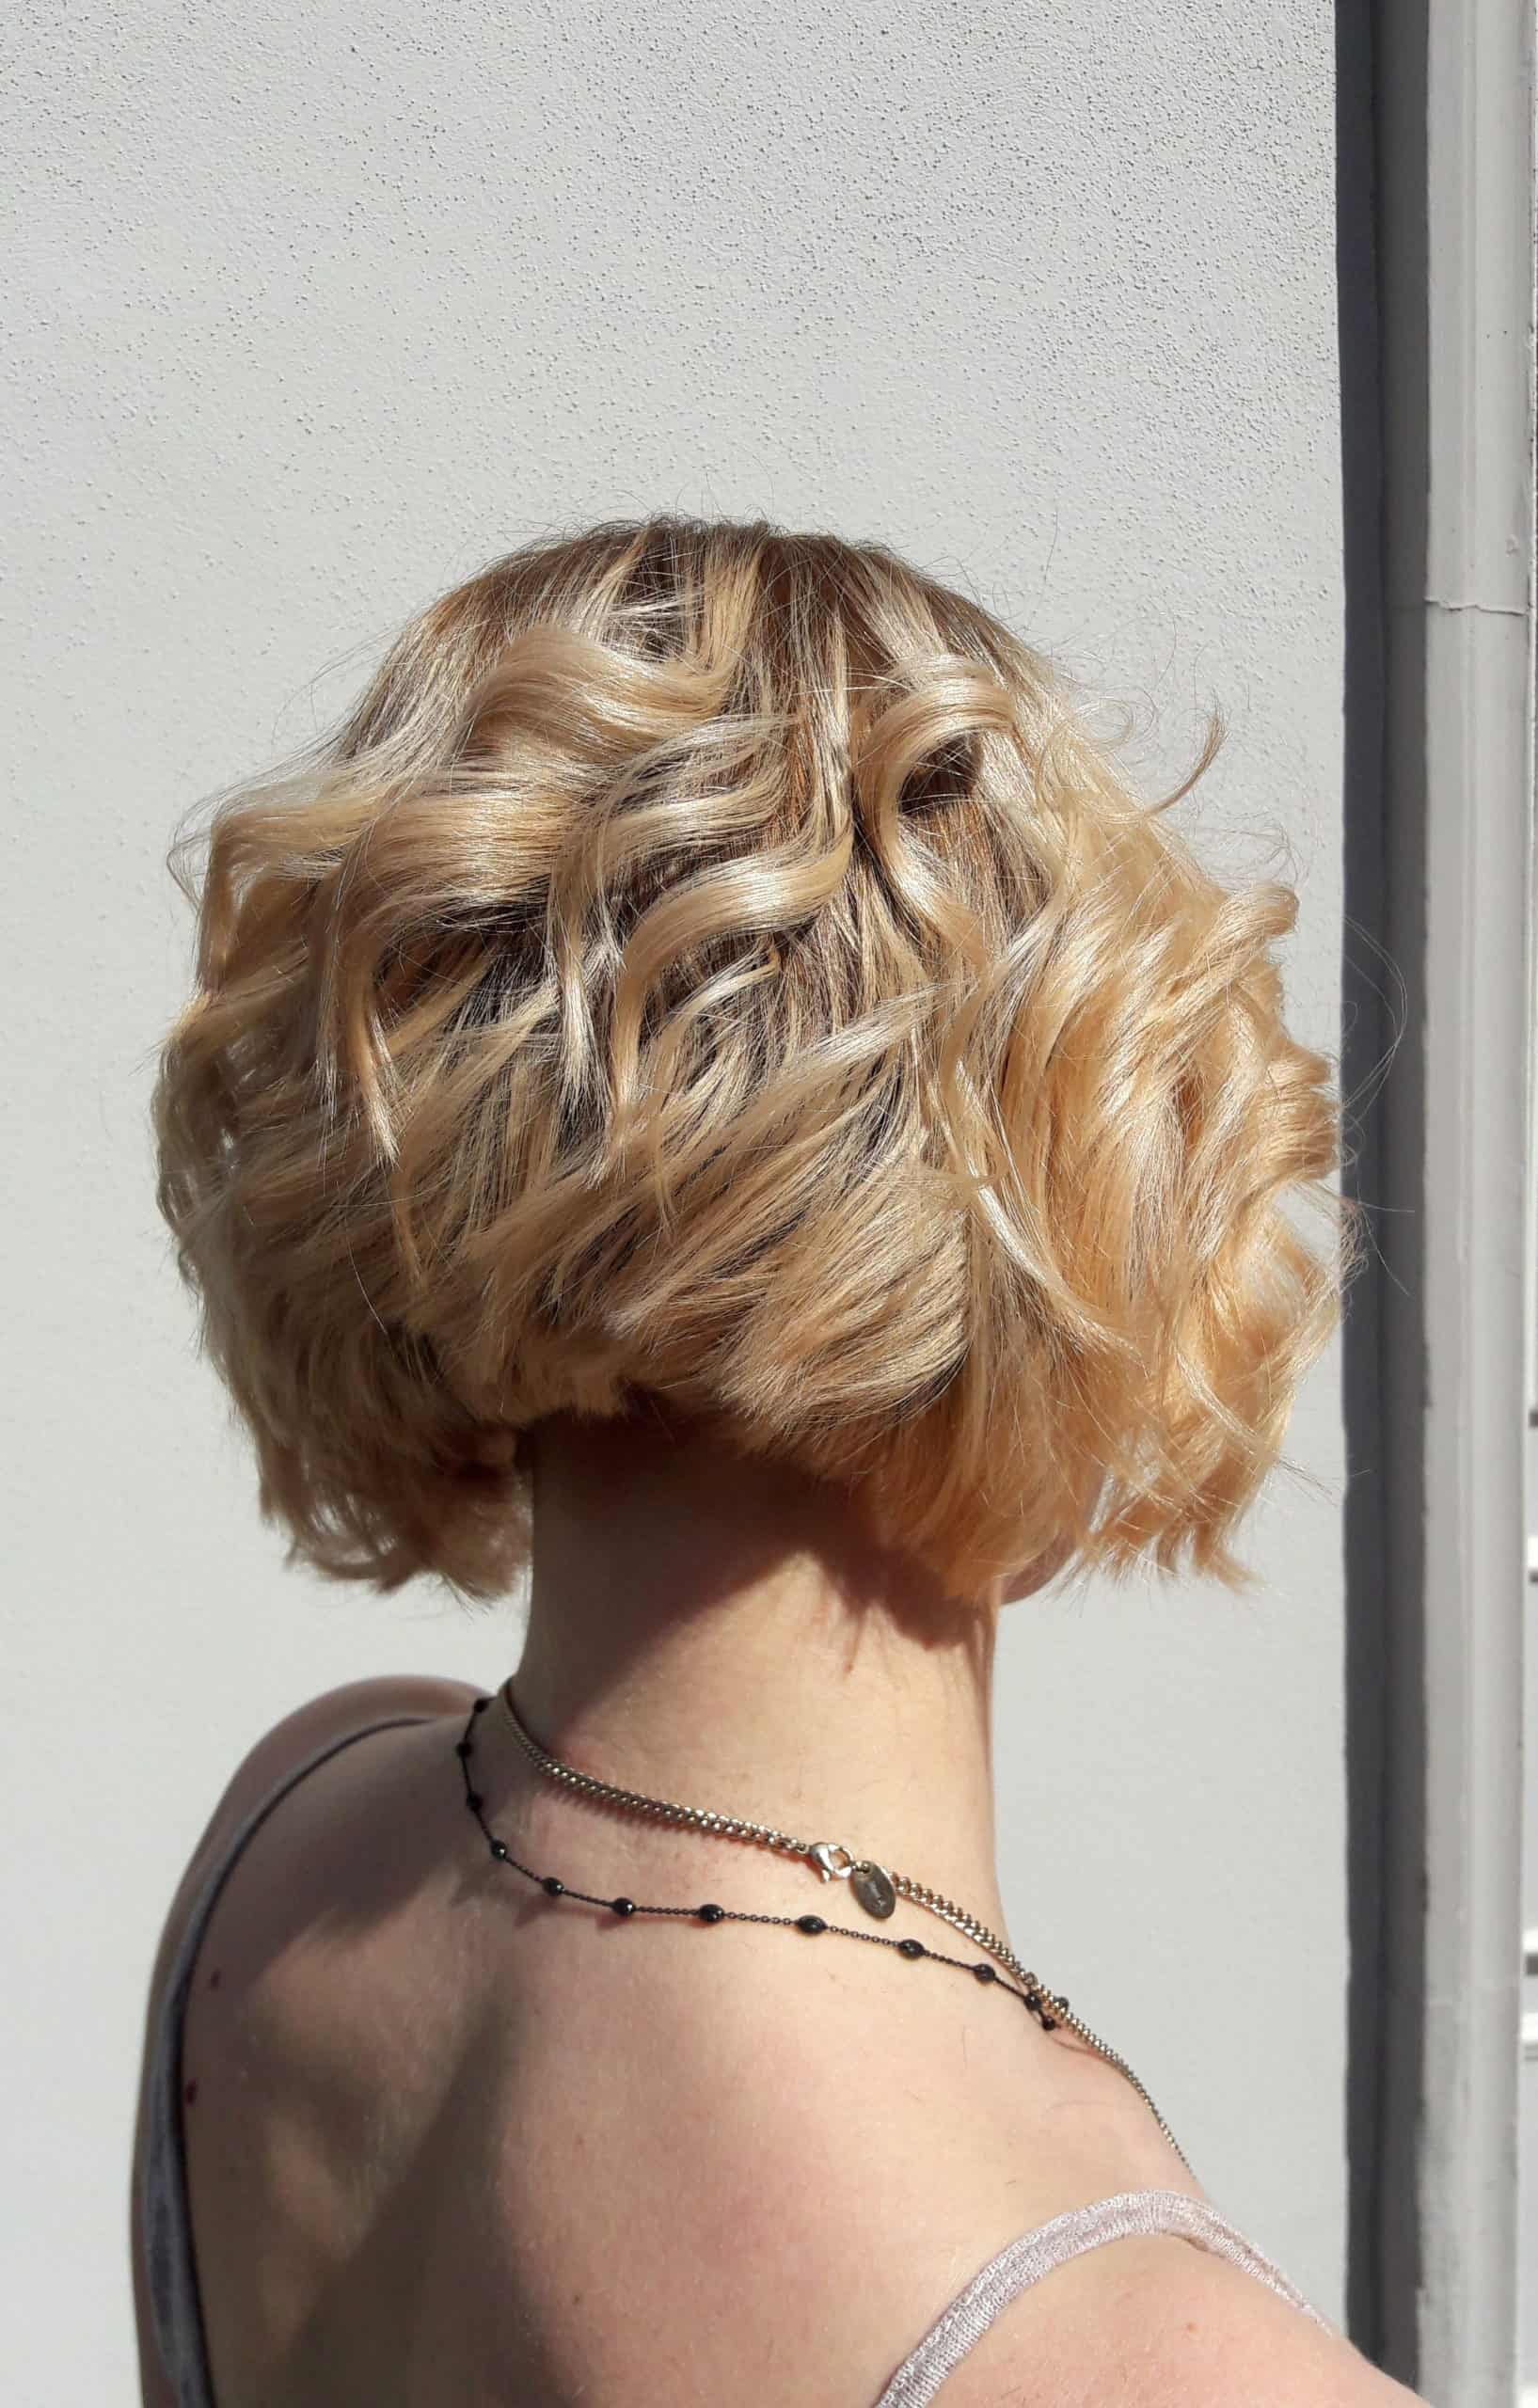 Balayage-in-Kupfer-Blond--scaled